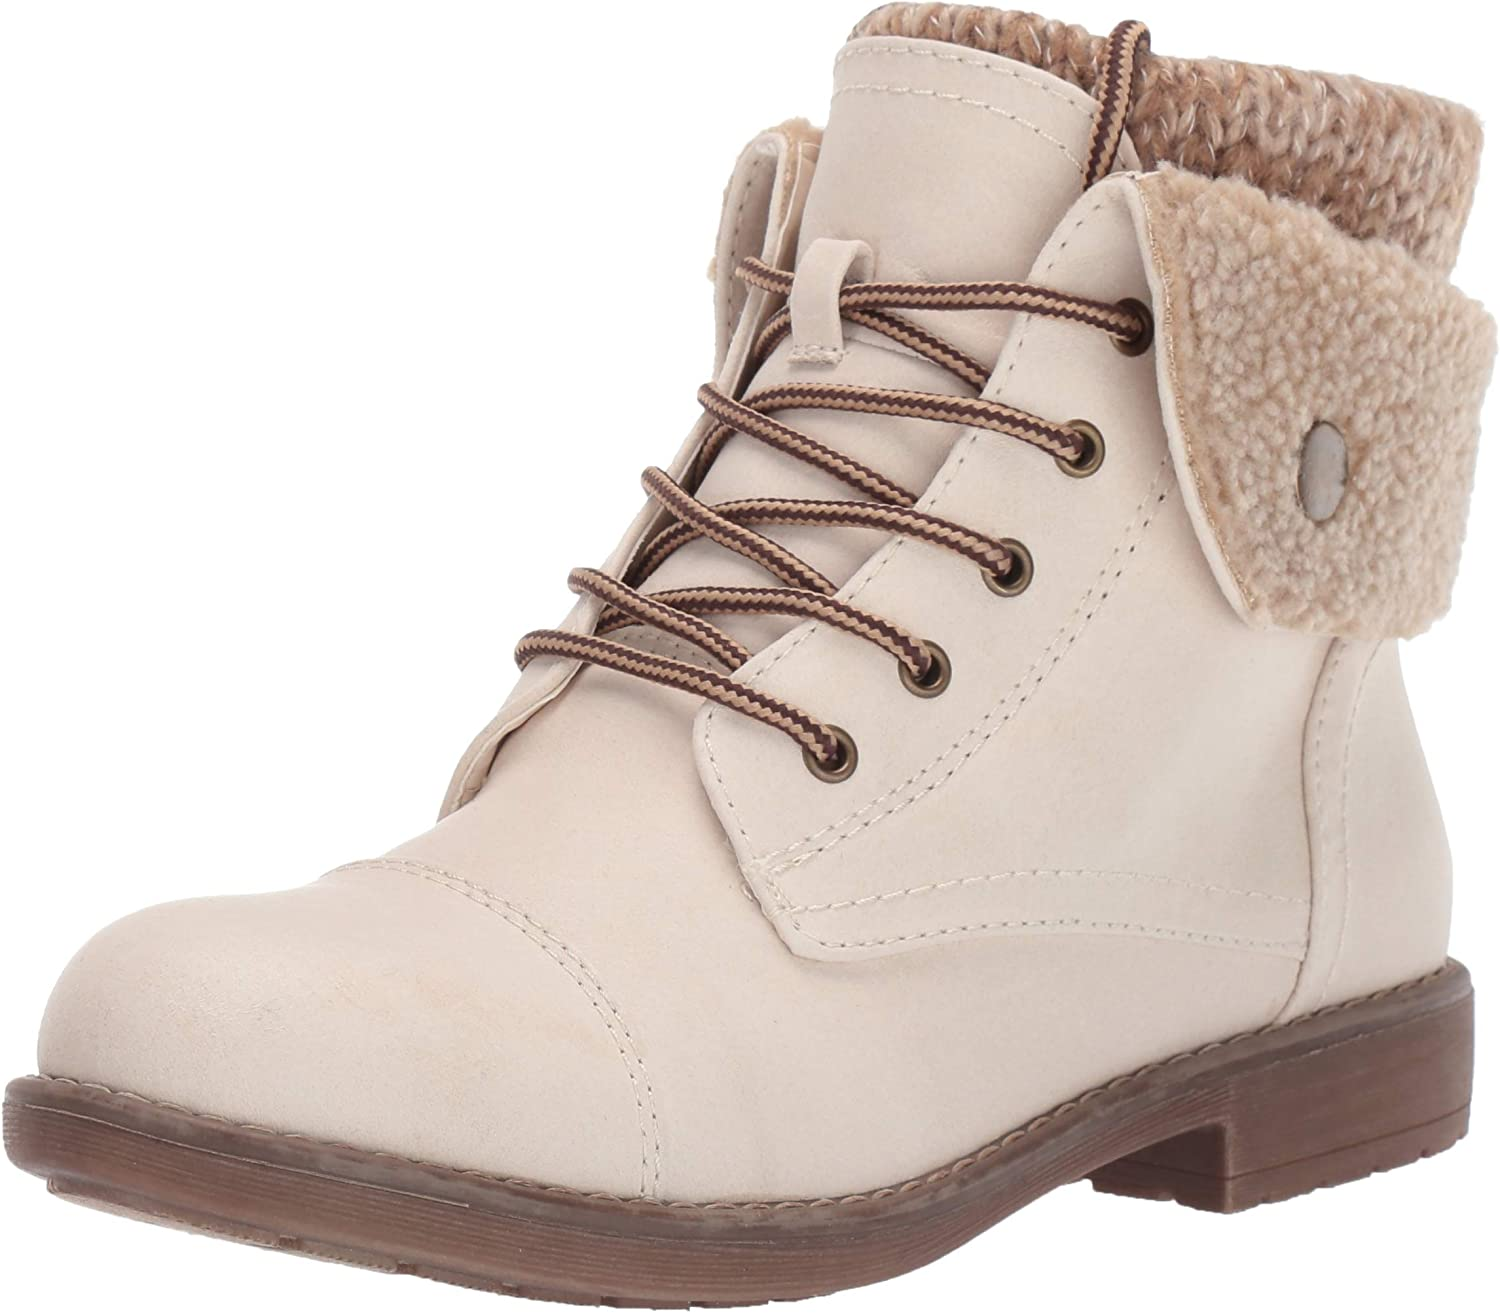 latest CLIFFS BY WHITE MOUNTAIN Fashion Women's Boot Hiking Duena Style